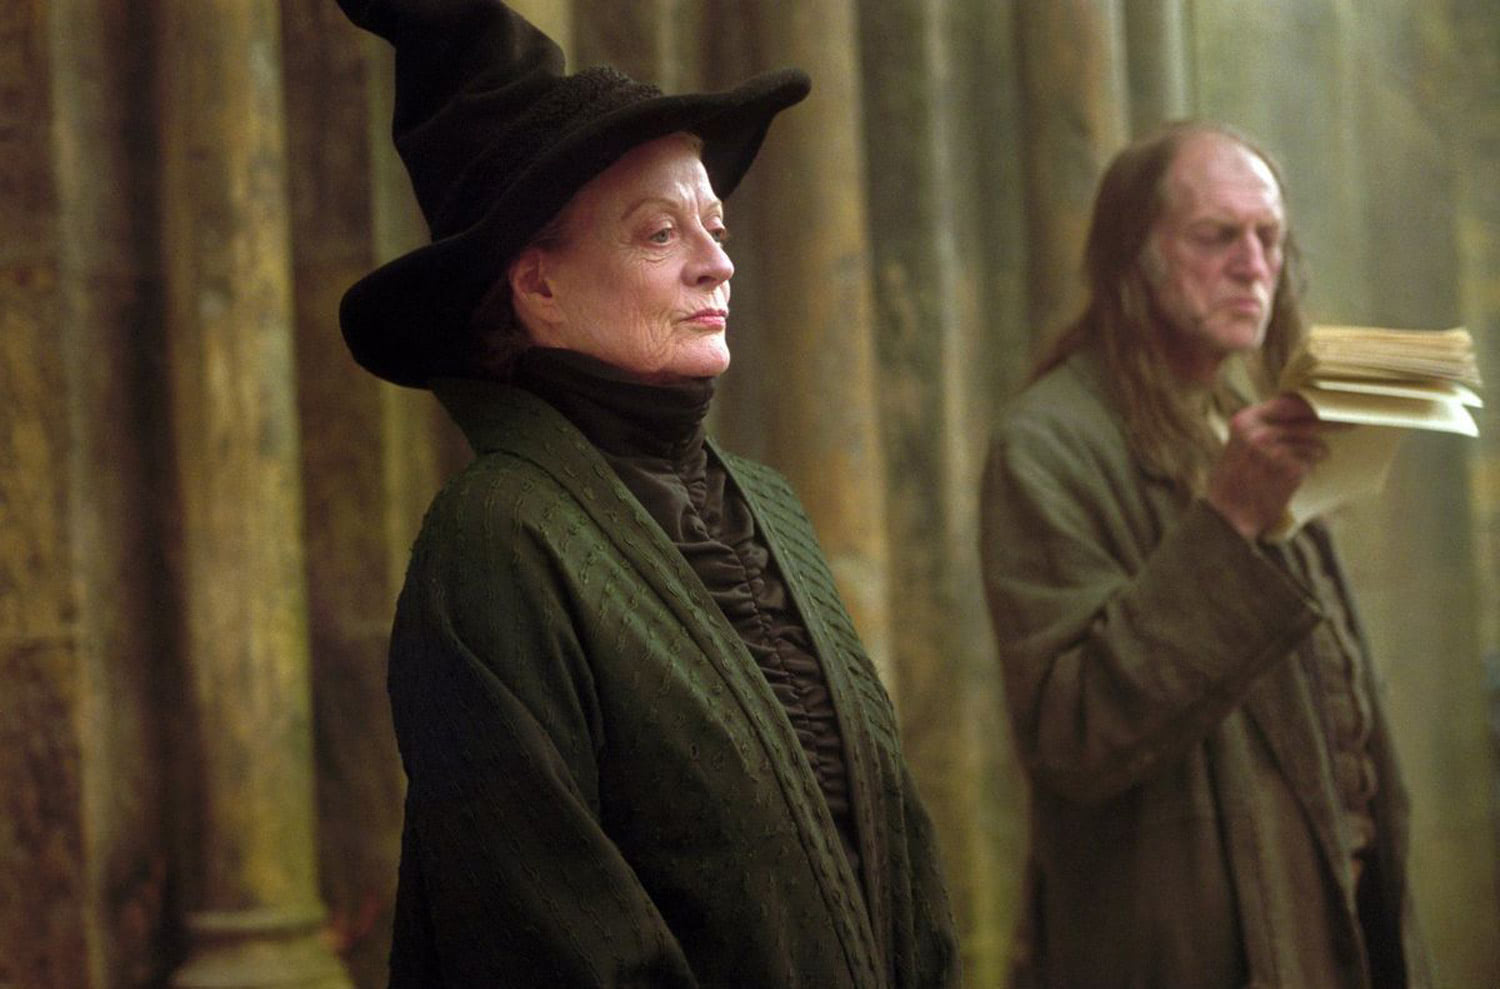 Professor McGonagall and Argus Filch